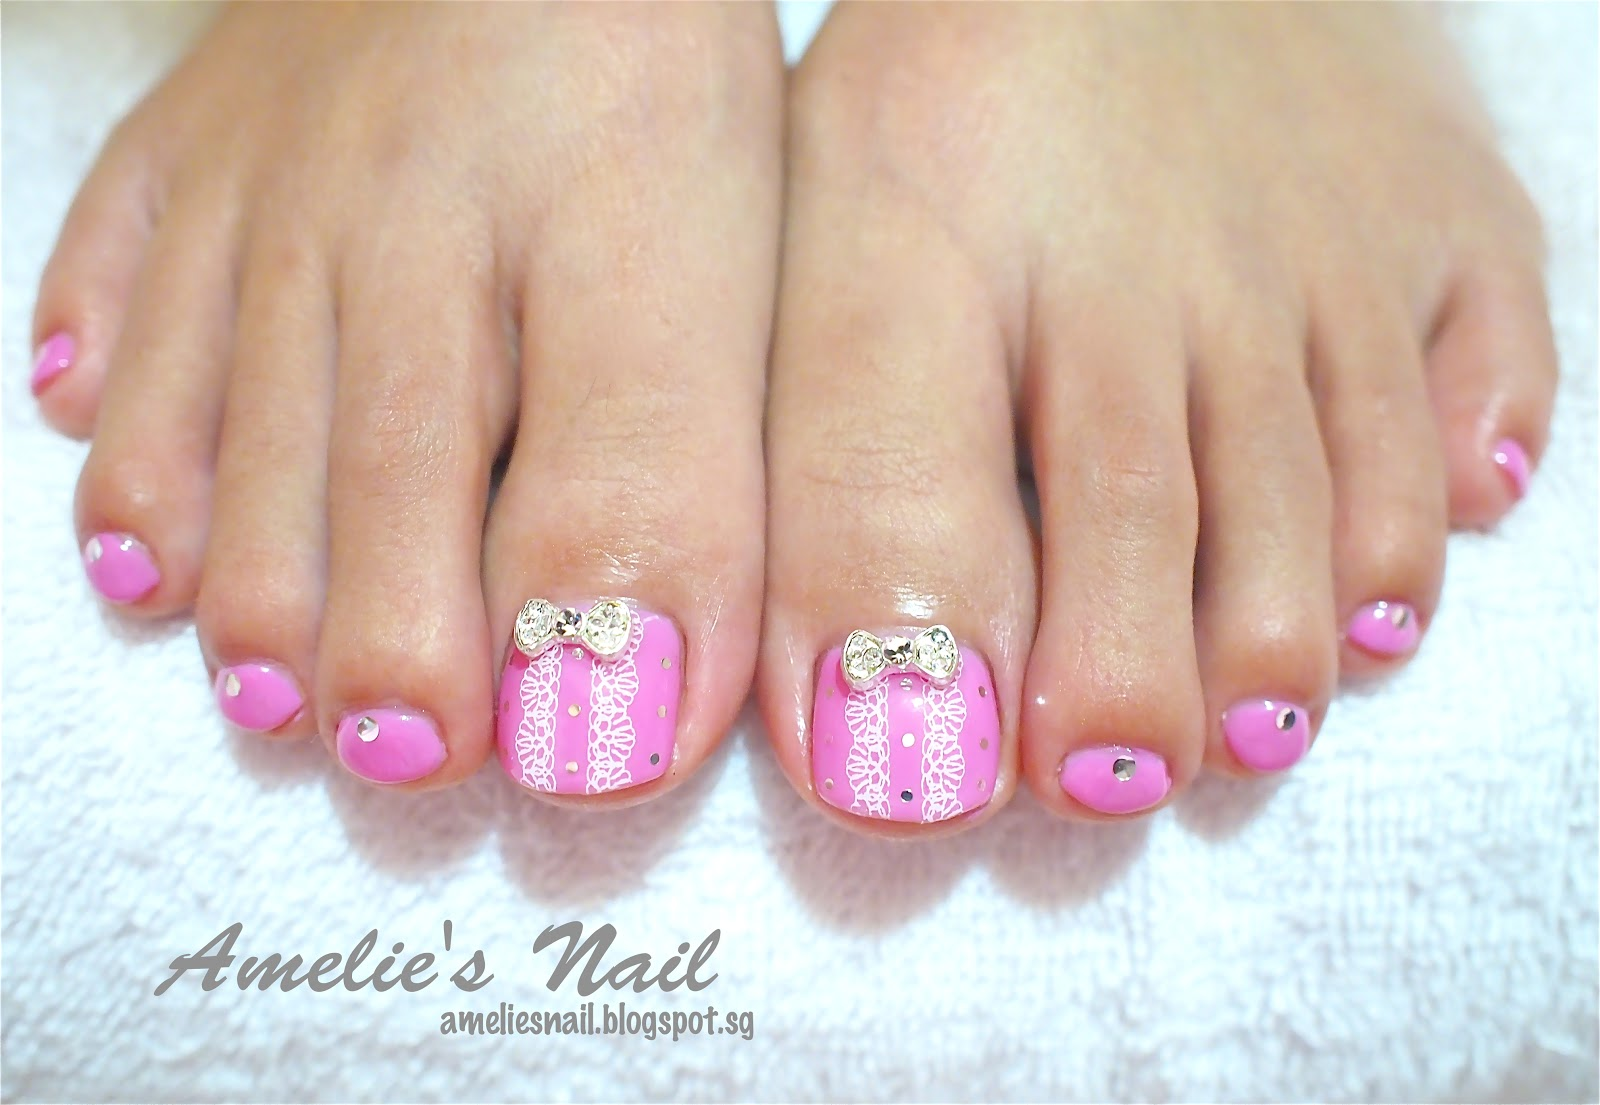 Frech Pedicure Designs | Joy Studio Design Gallery - Best ...